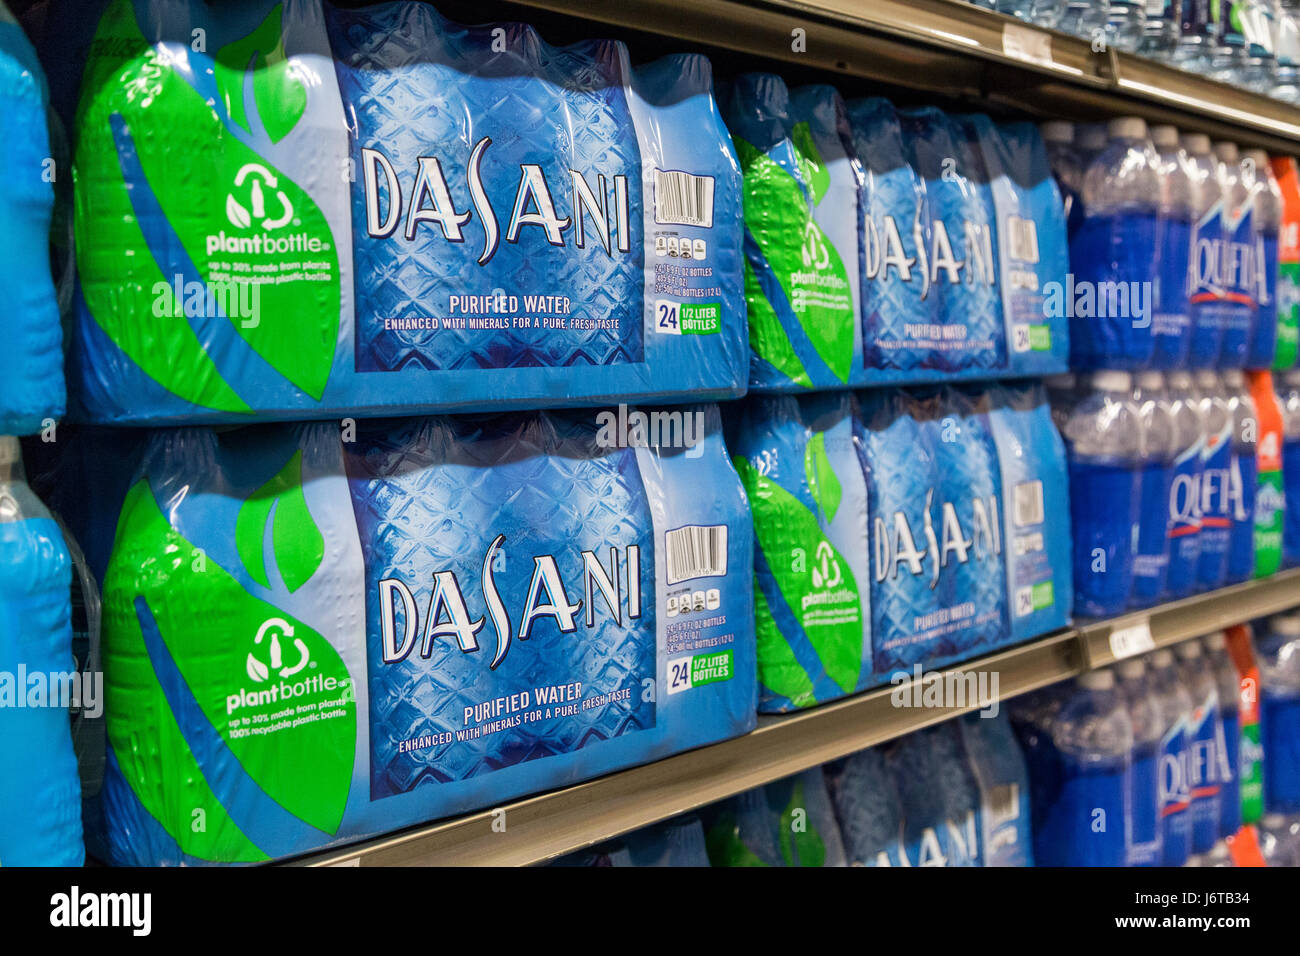 Packages of Dasani brand water bottles sit on the shelves of a grocery store - Stock Image